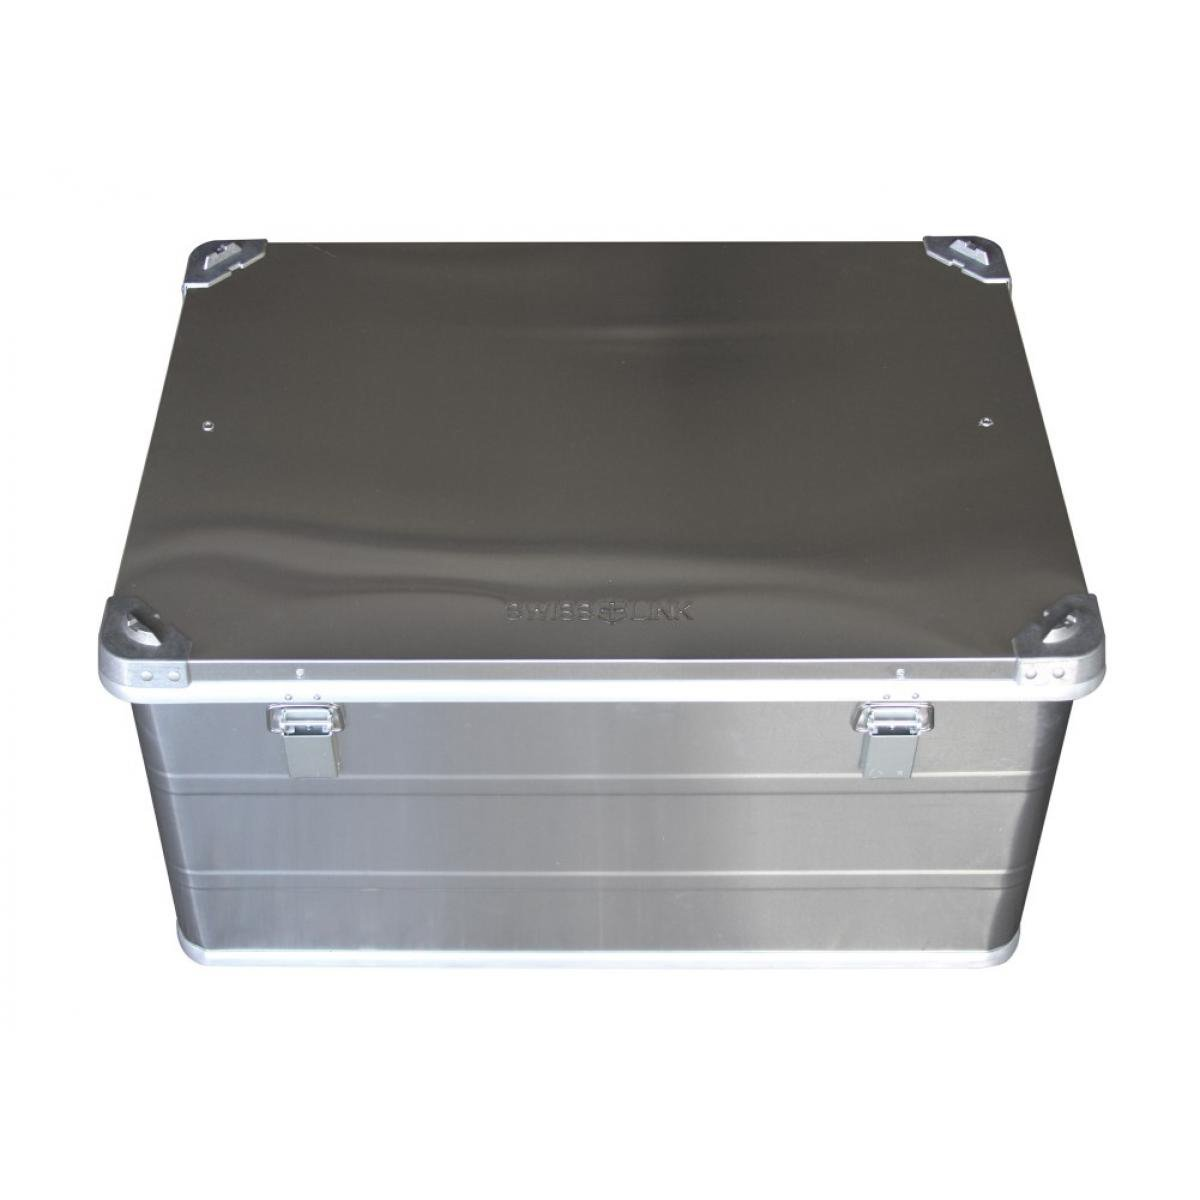 Swiss Link 4195 Large Aluminum Storage Case with Spring Loaded Rubber Grips